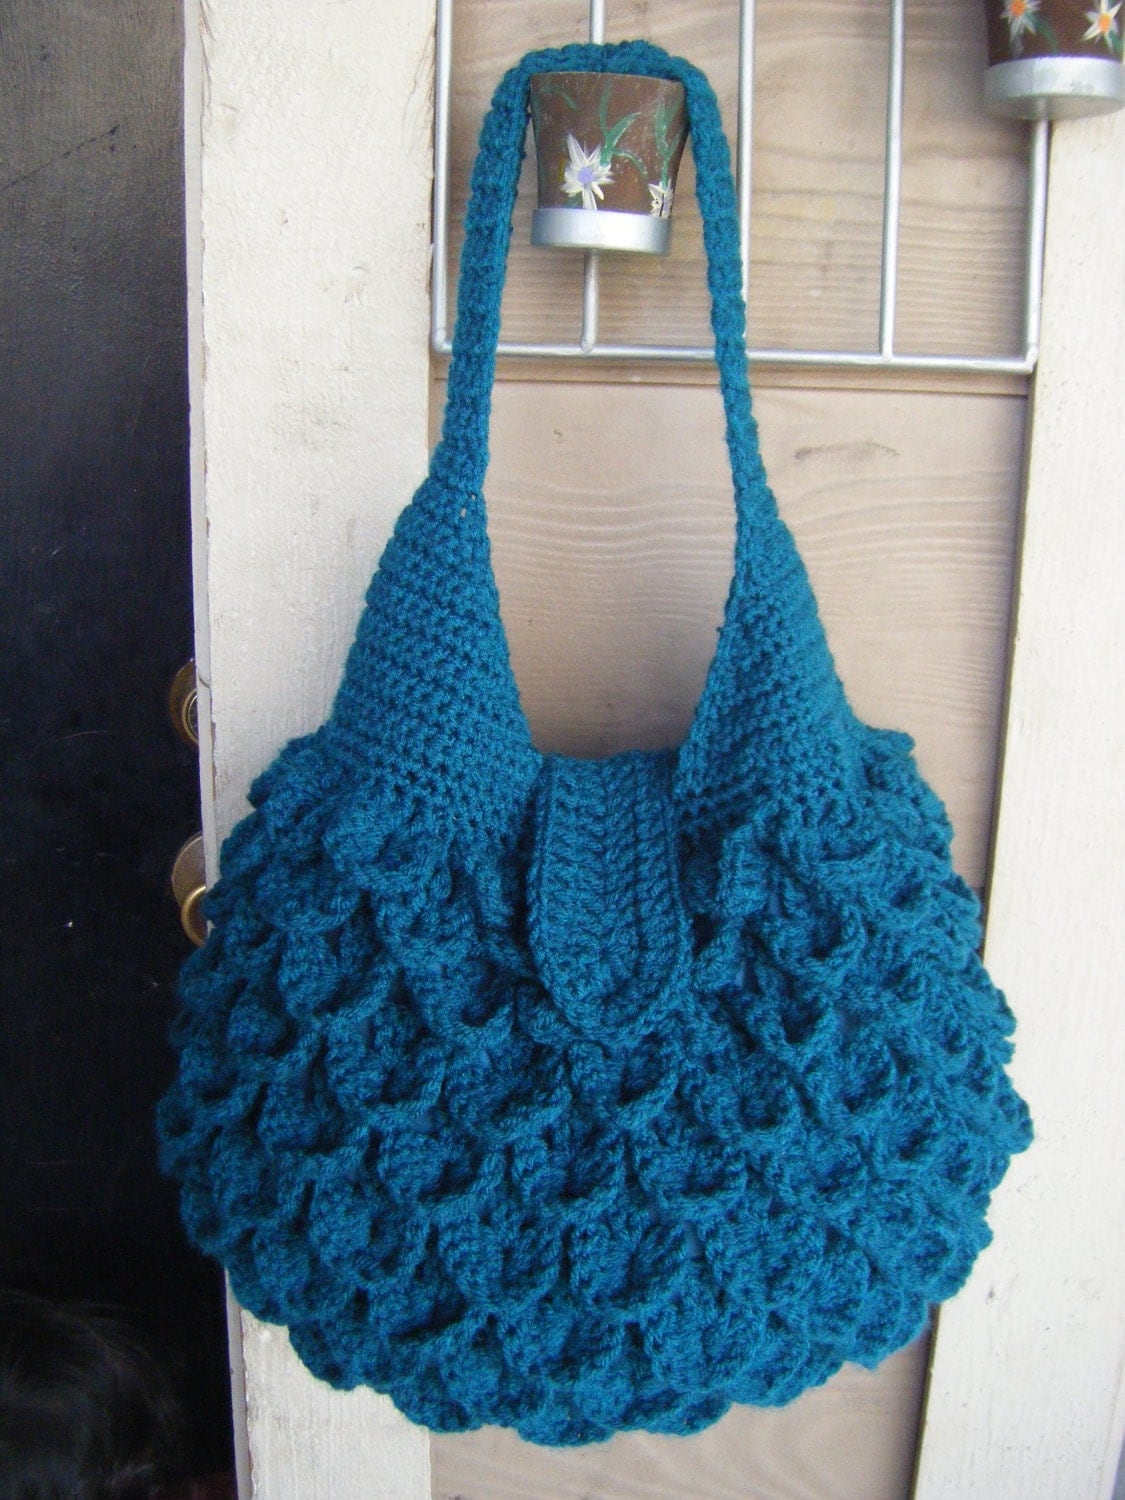 Crochet Crocodile Bag Pattern PERMISSION SELL by NatalieSpot